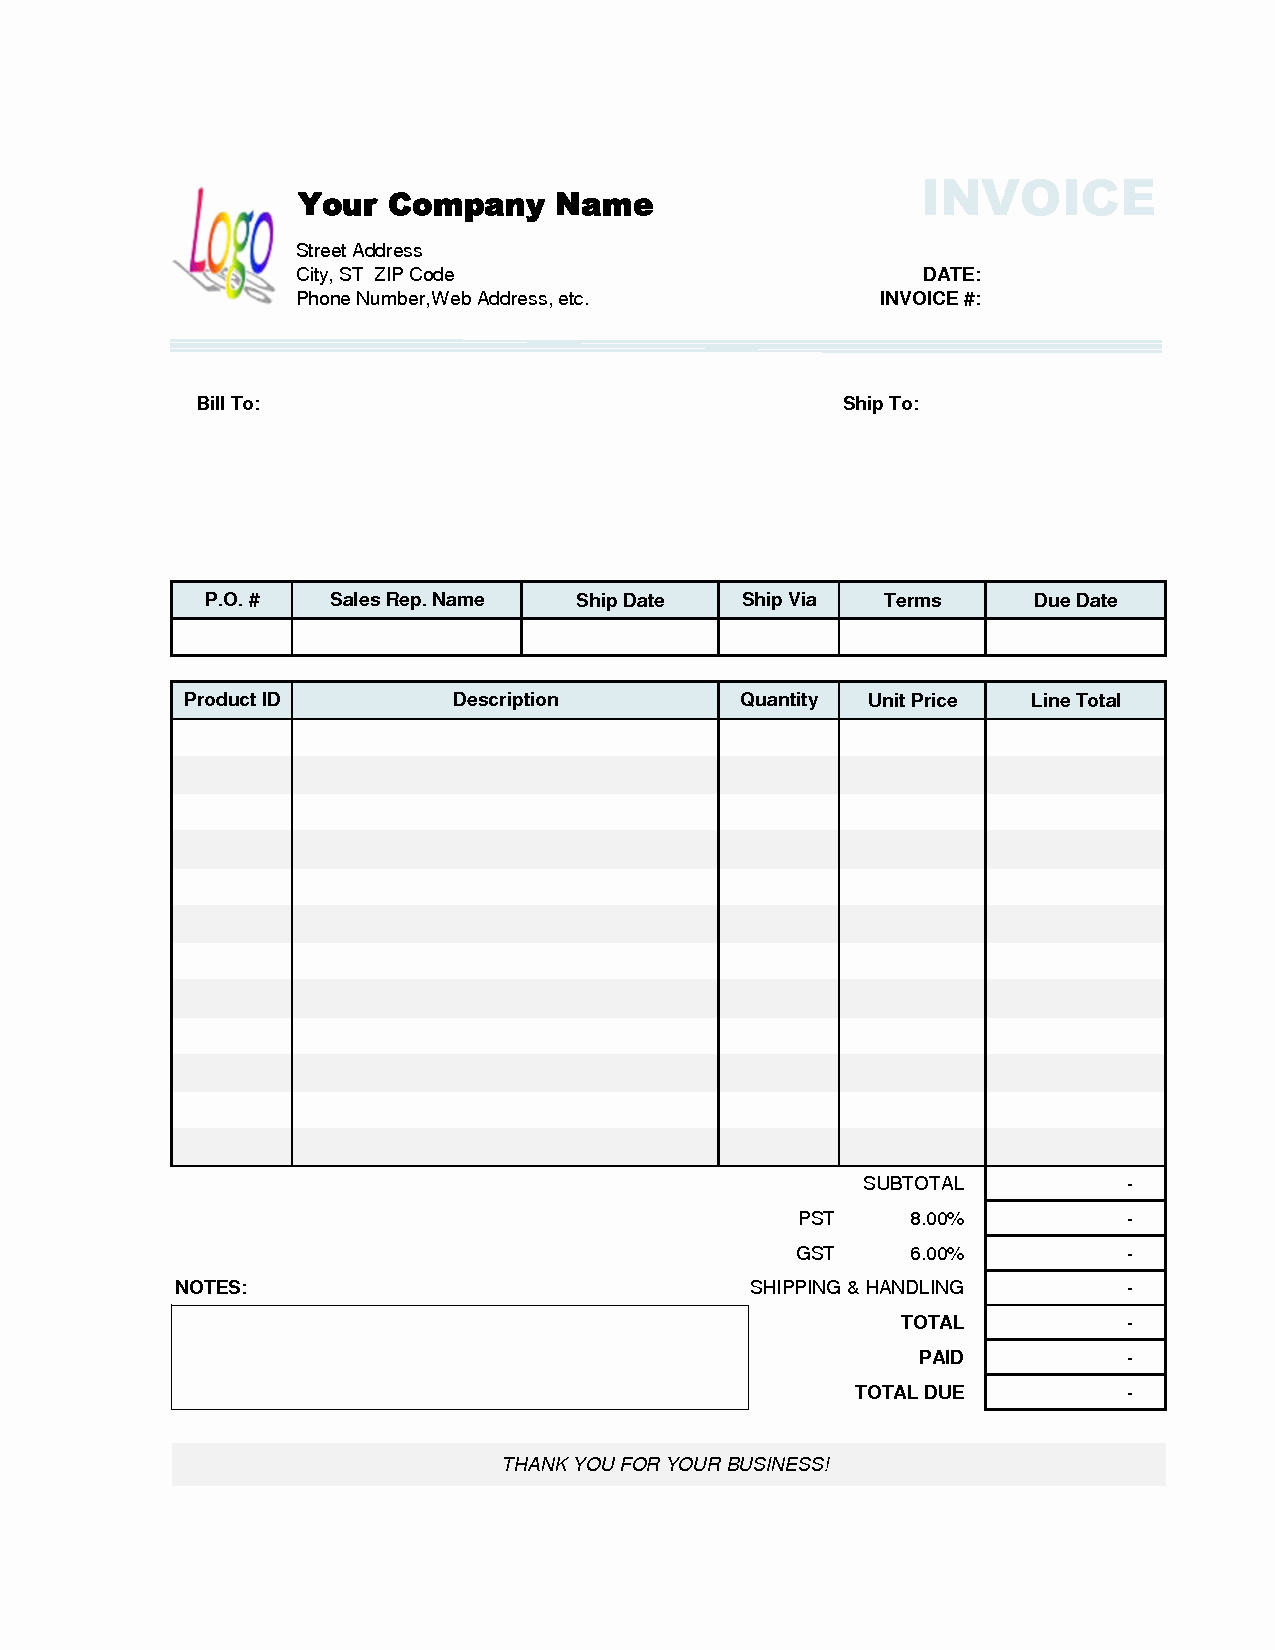 Microsoft Word Invoice Templates Free New Invoice Template Excel 2010